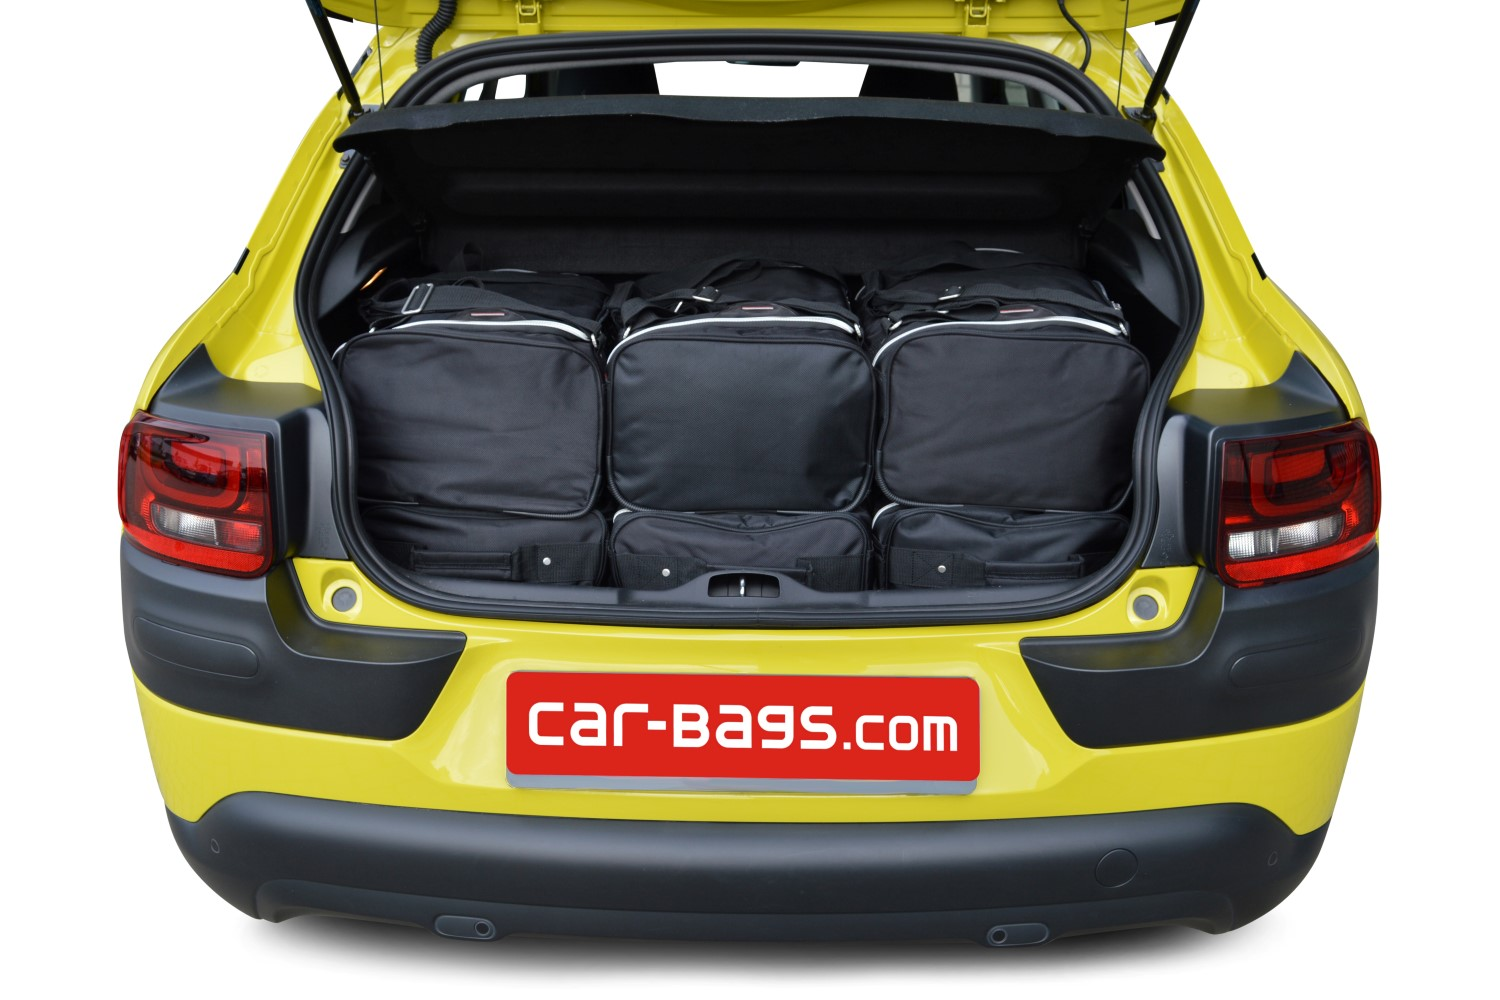 c4 citro n c4 cactus 2014 heden 5d car bags reistassenset. Black Bedroom Furniture Sets. Home Design Ideas